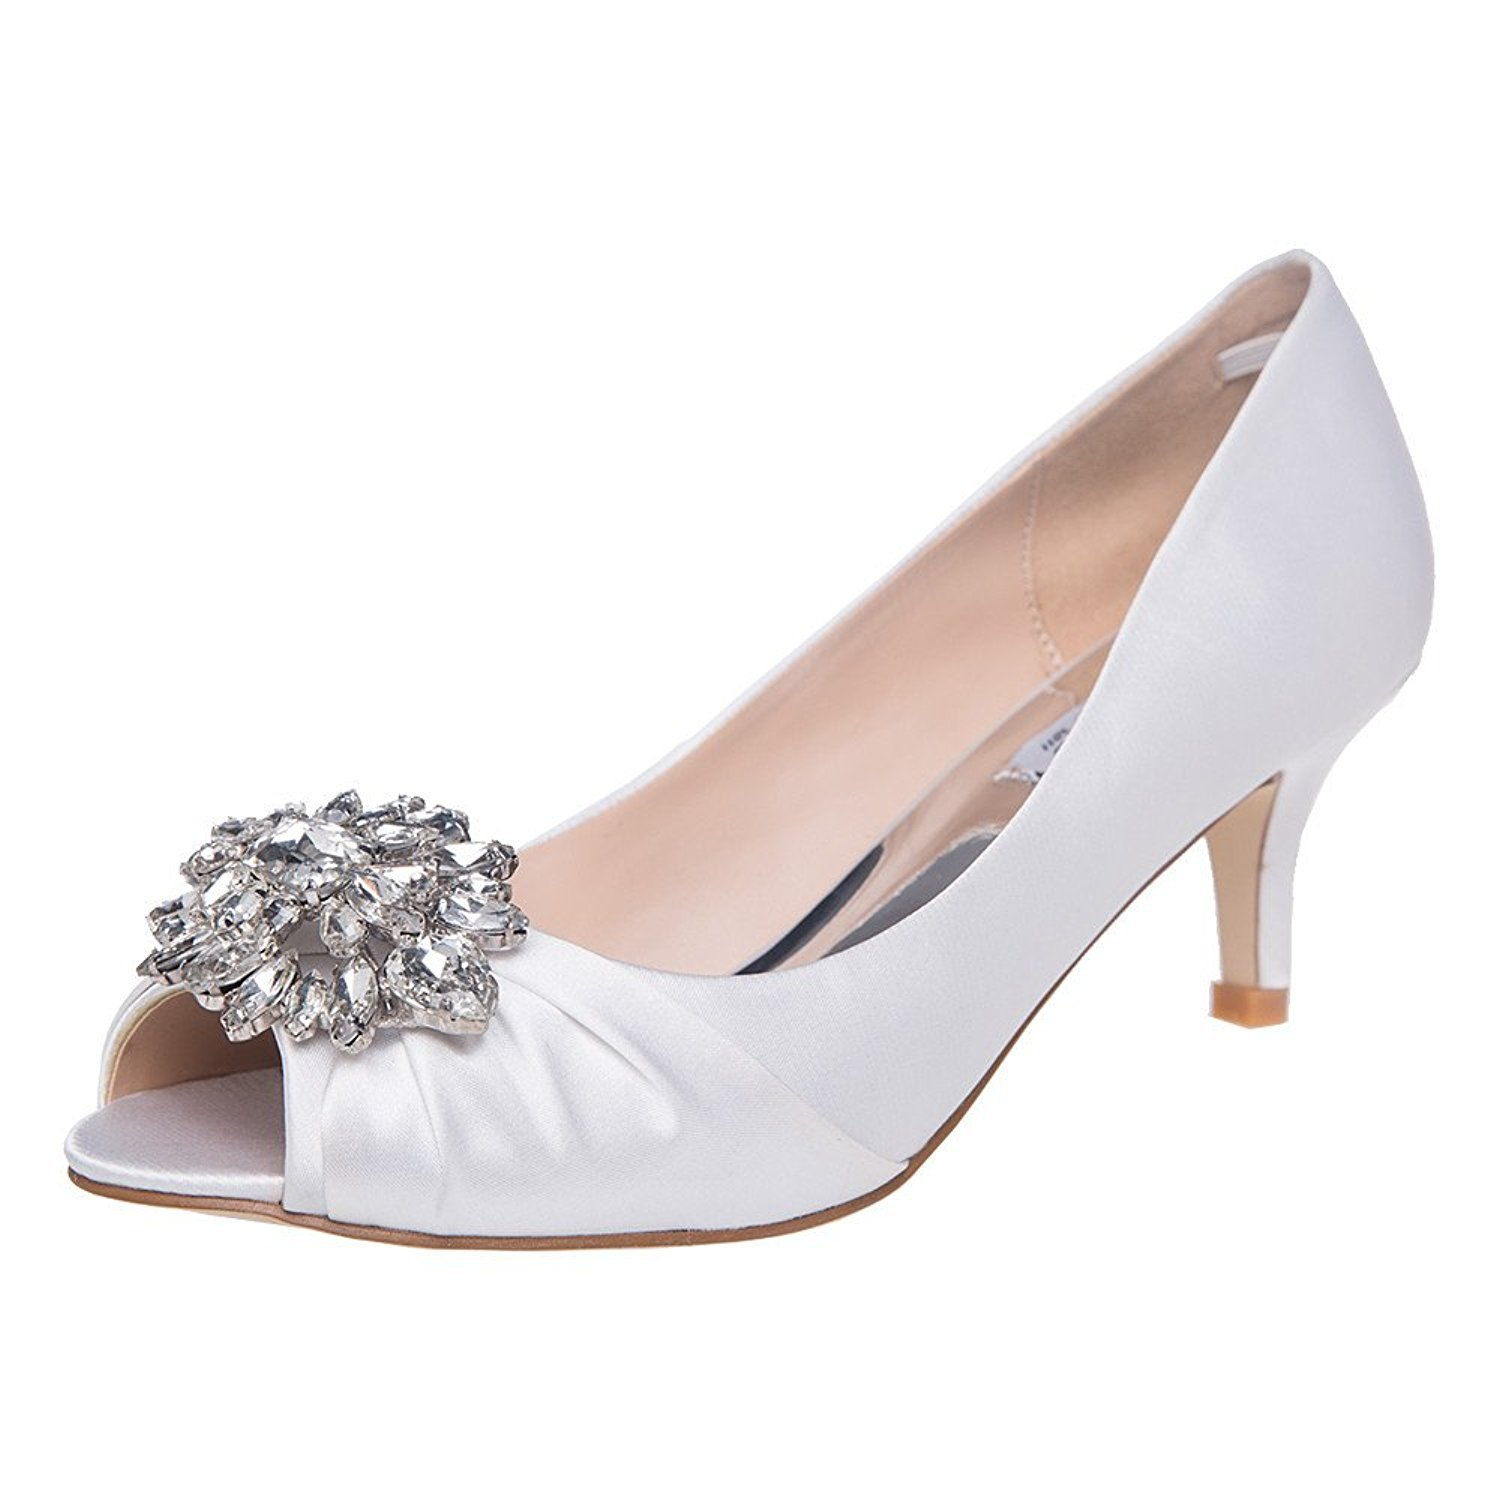 SheSole Womens Low Heel Dress Pumps Rhinestone Open Toe Wedding Shoes White US 9